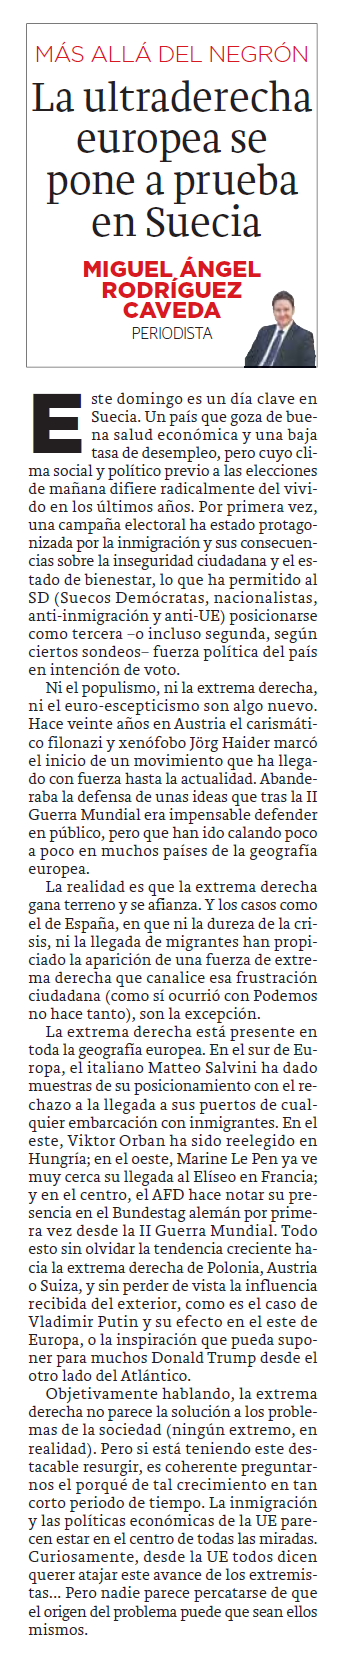 columna opinion Miguel Angel Rodriguez Caveda